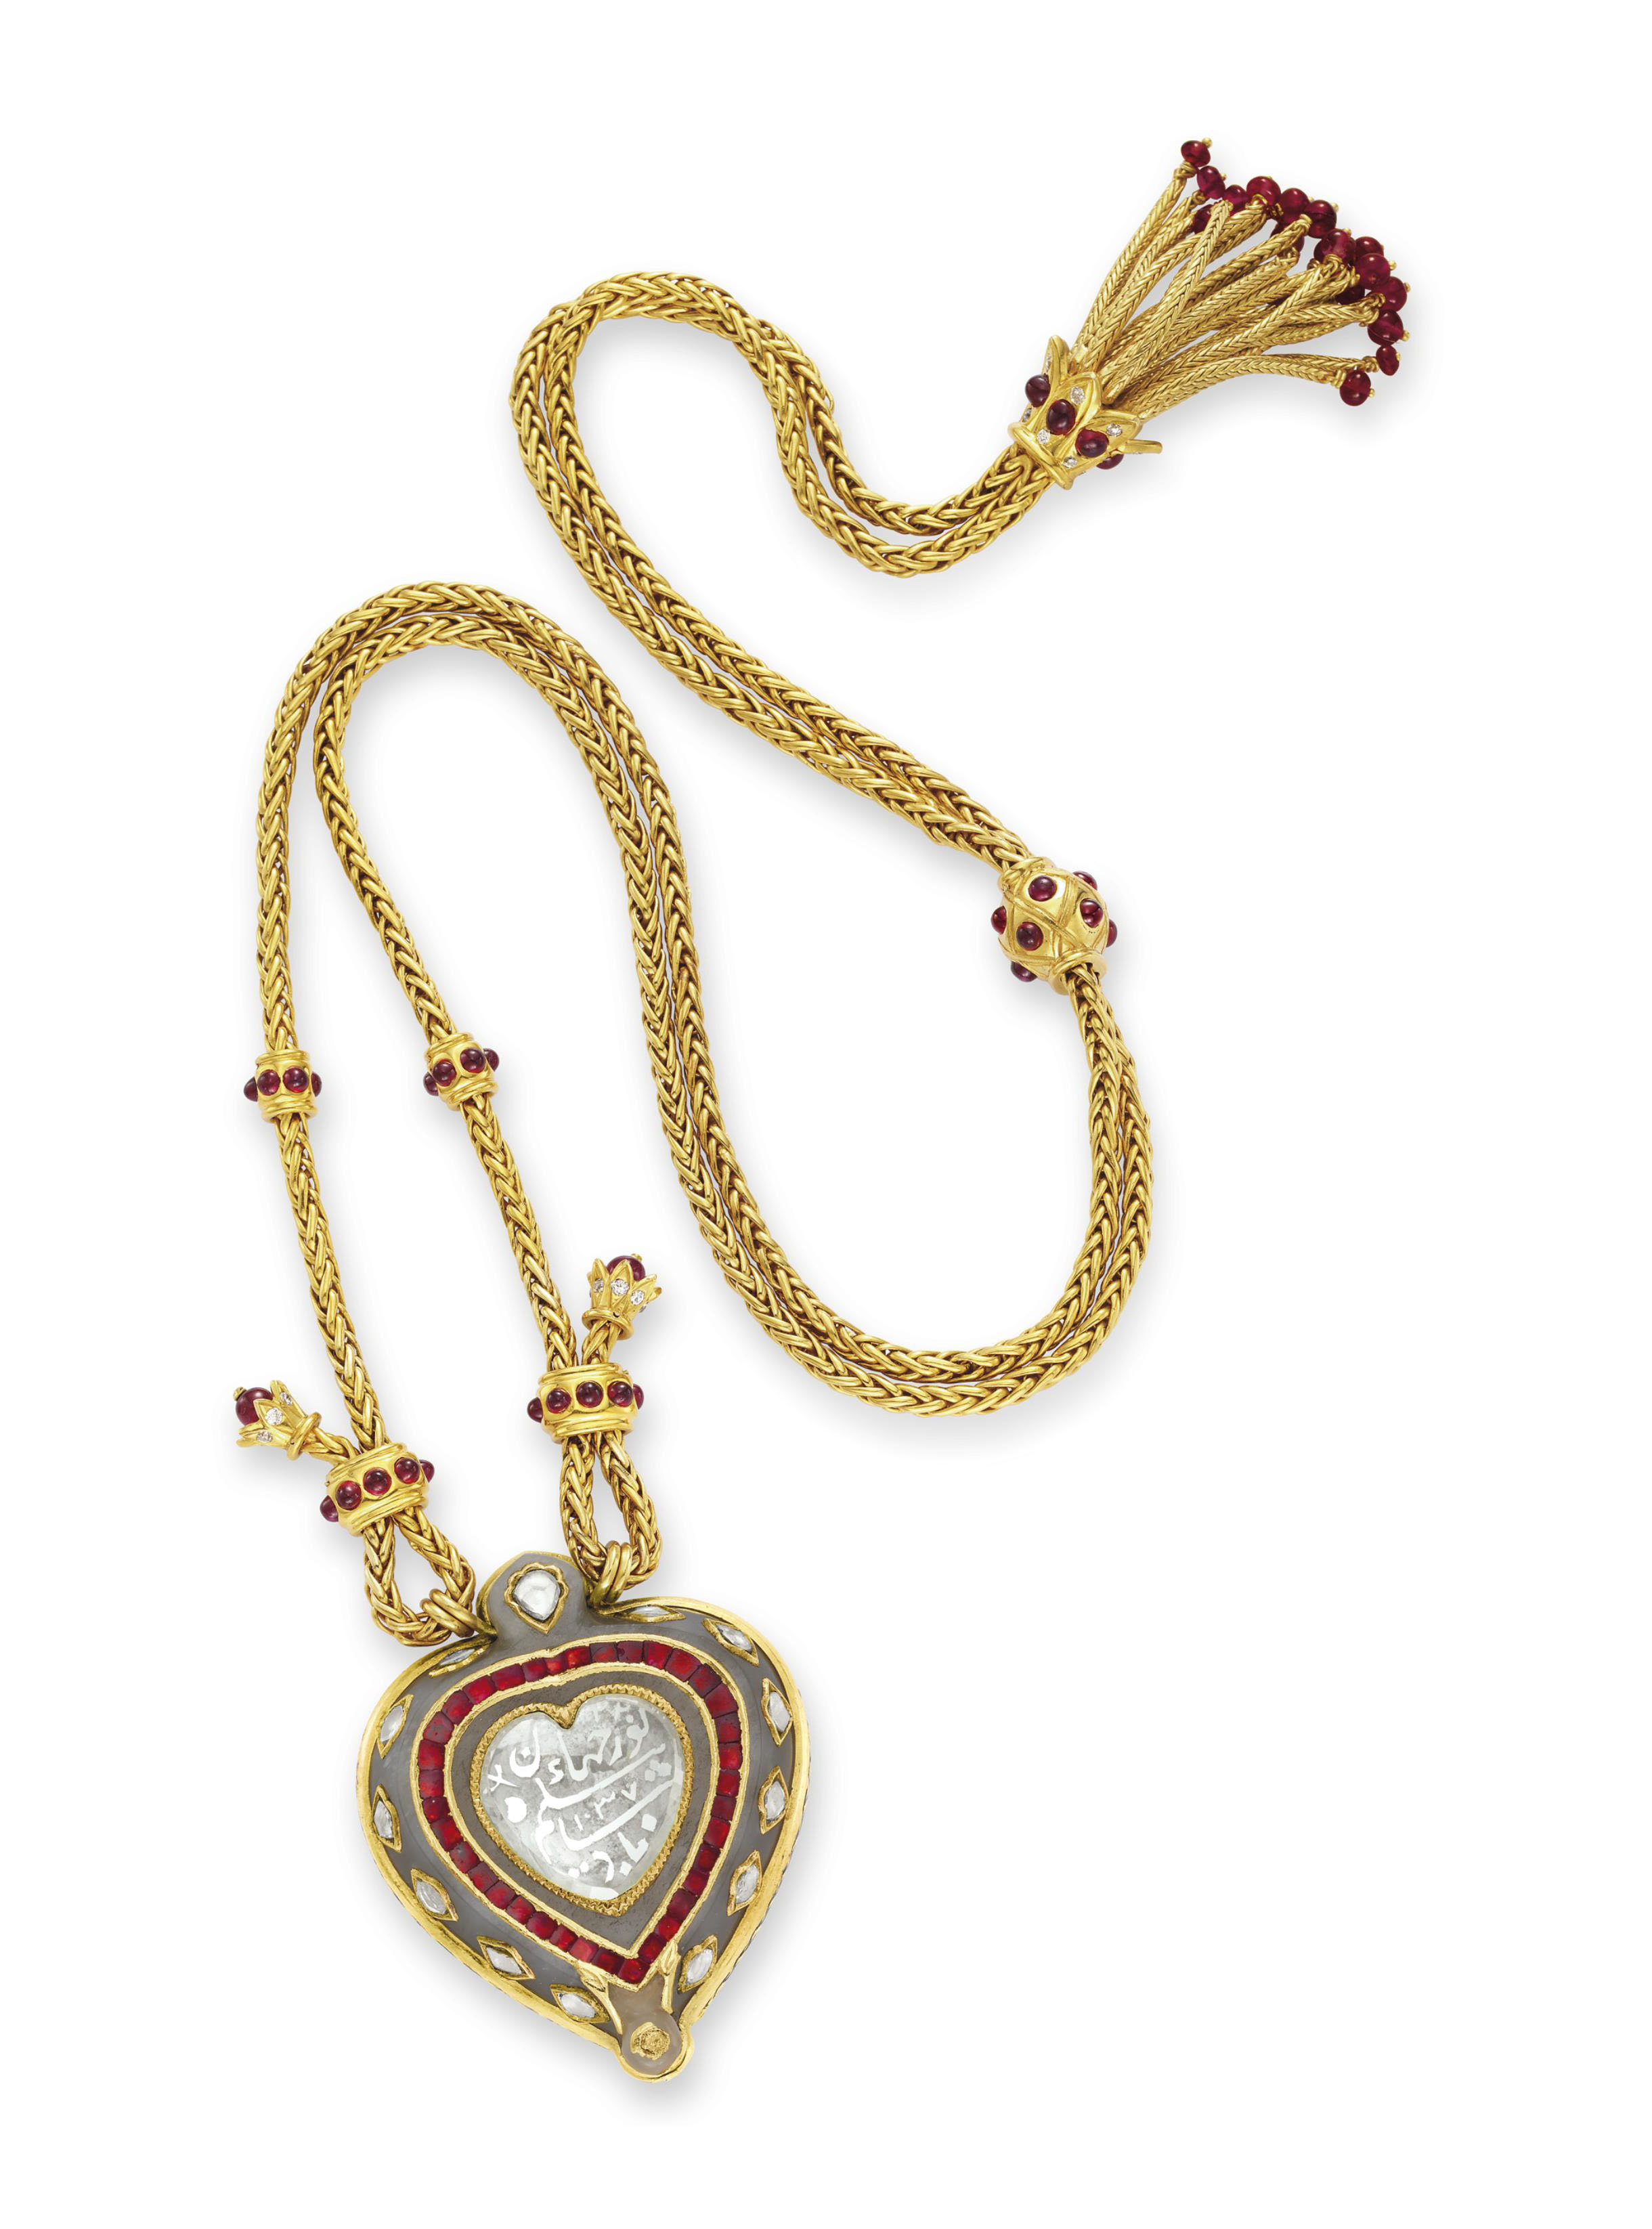 AN INDIAN DIAMOND AND JADE PENDANT NECKLACE RUBY AND GOLD CHAIN, BY CARTIER